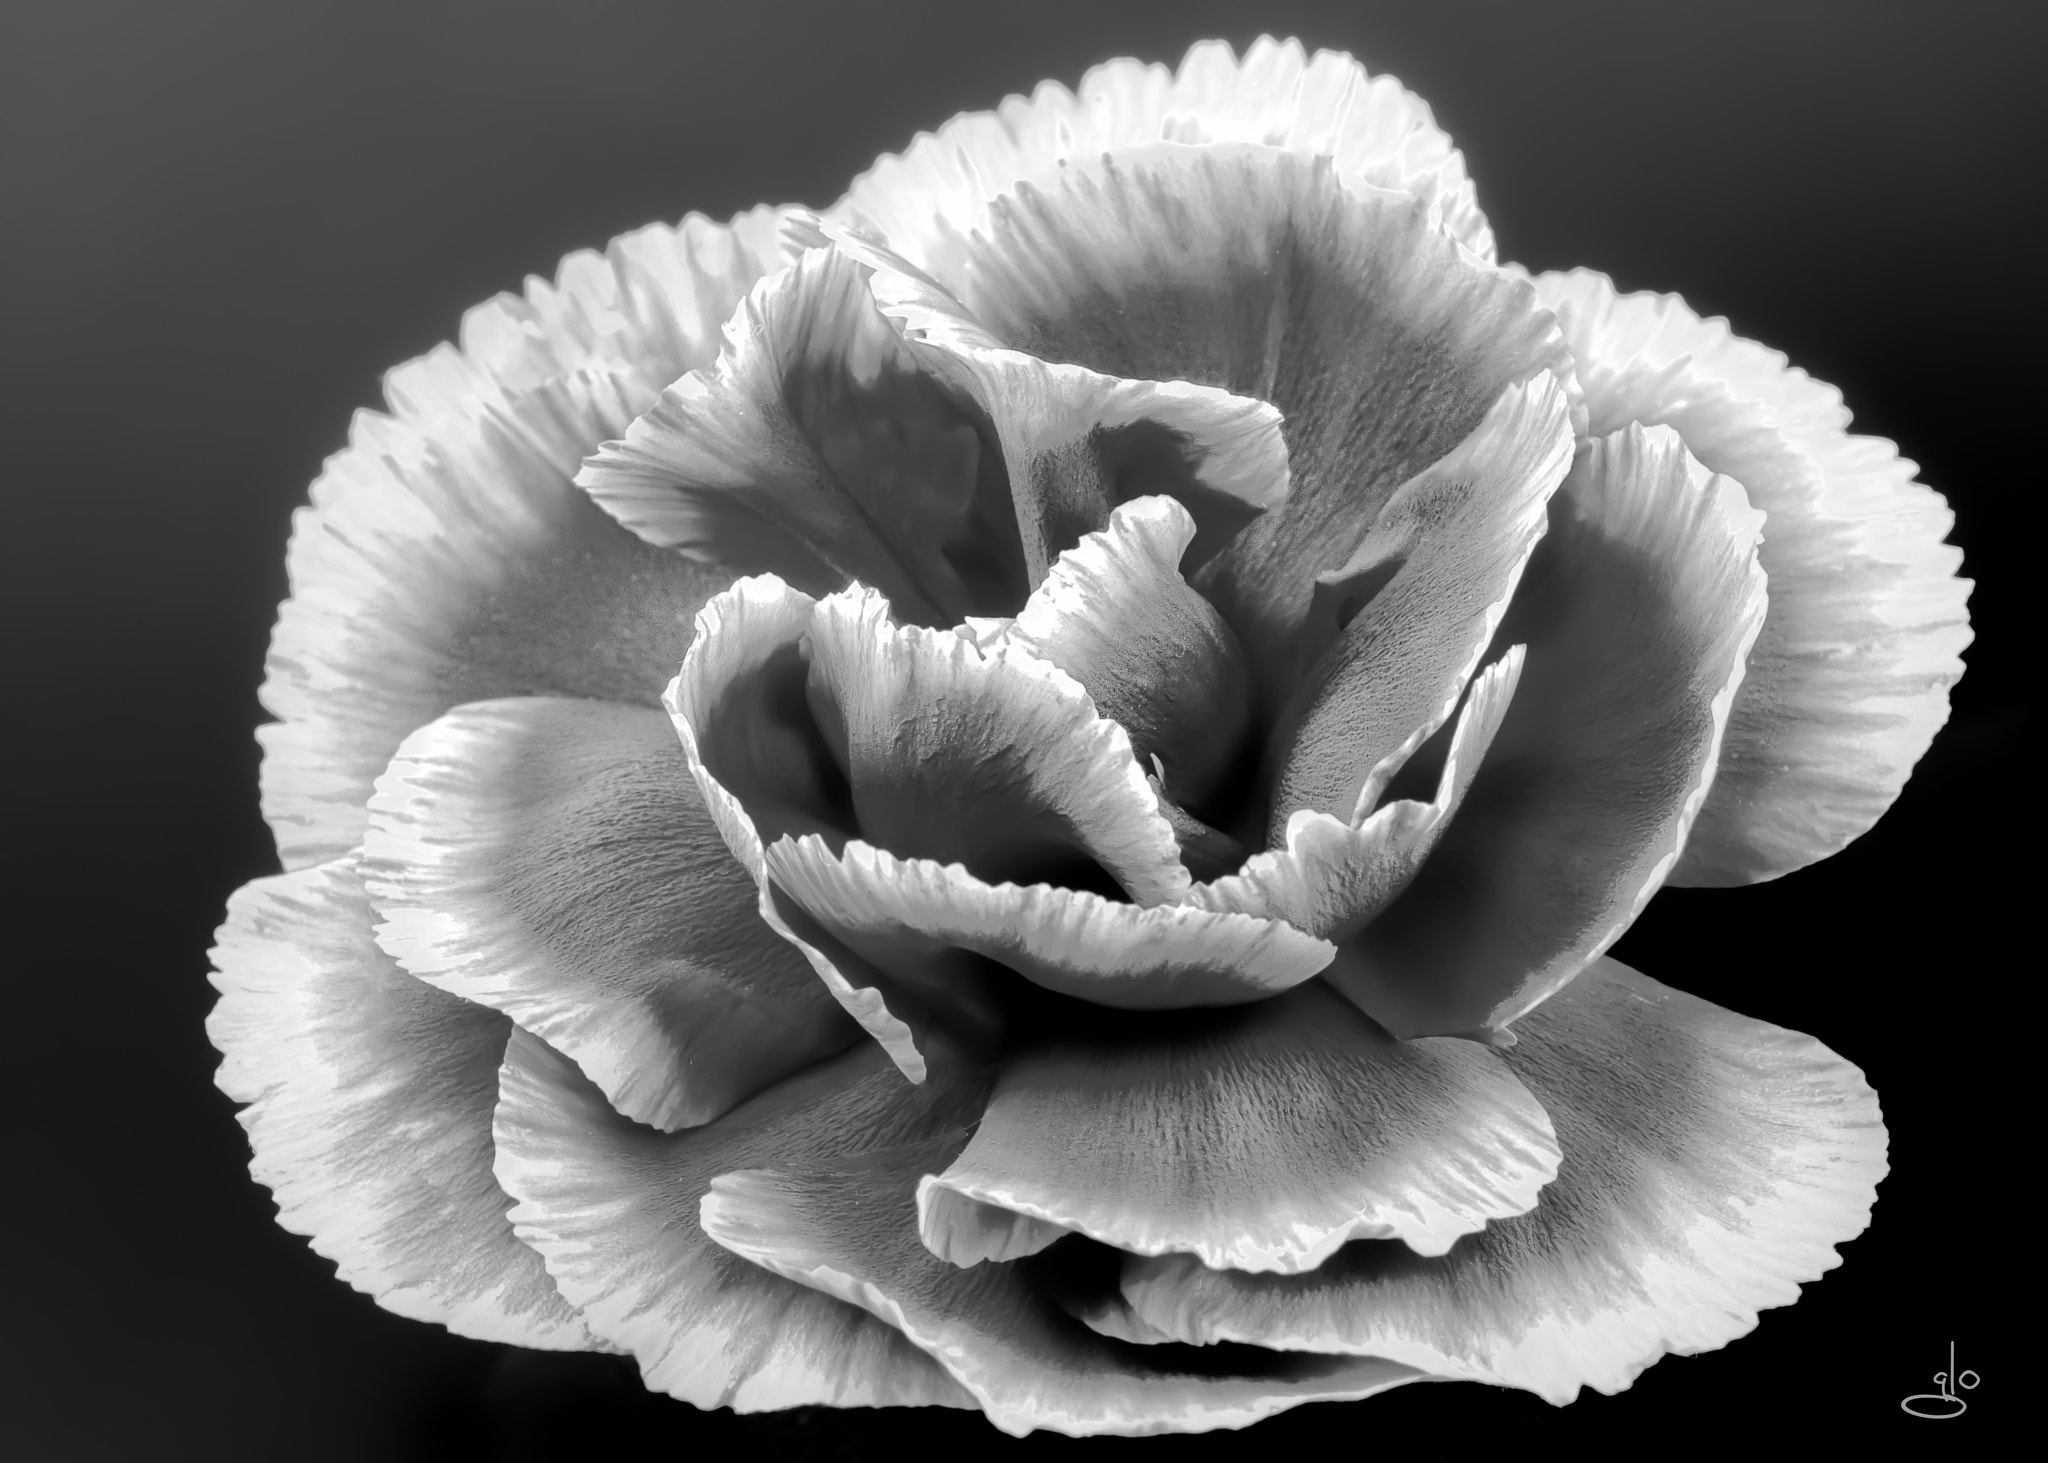 Photograph Monochrome beauty by Glo Photography on 500px